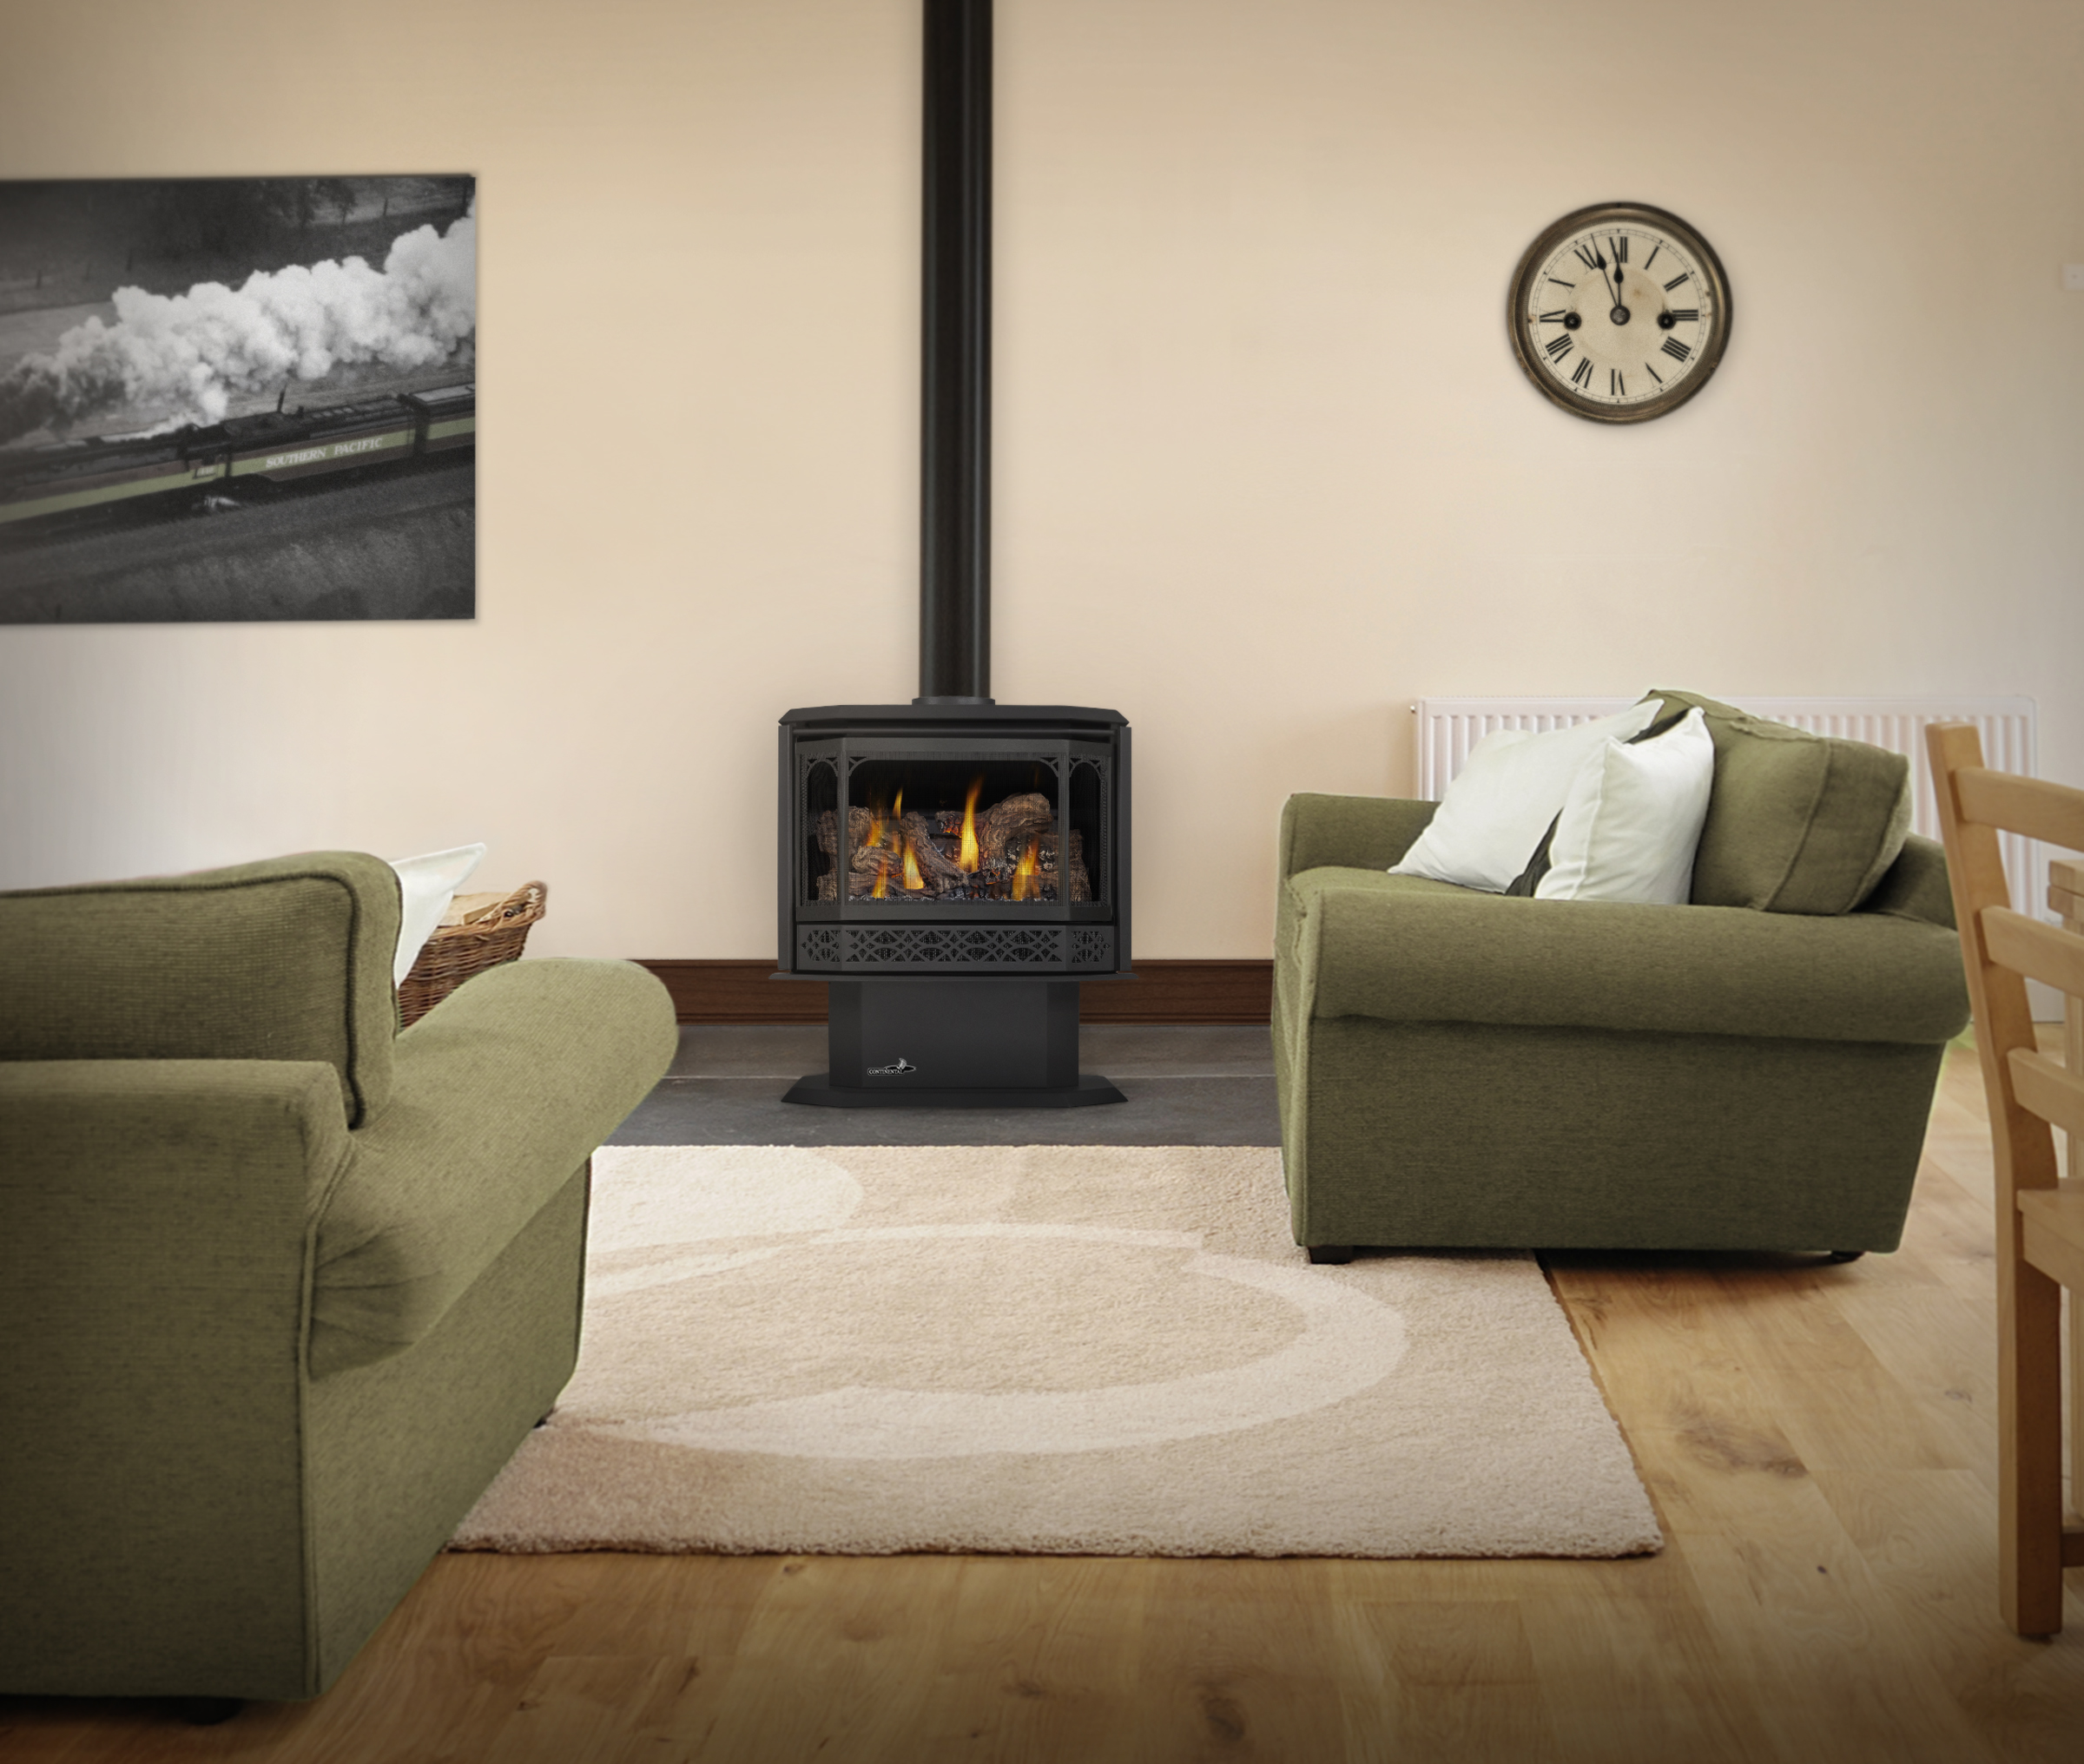 CDVSS50-straight-livingroom-fireplaces--continental-fireplaces (1).jpg